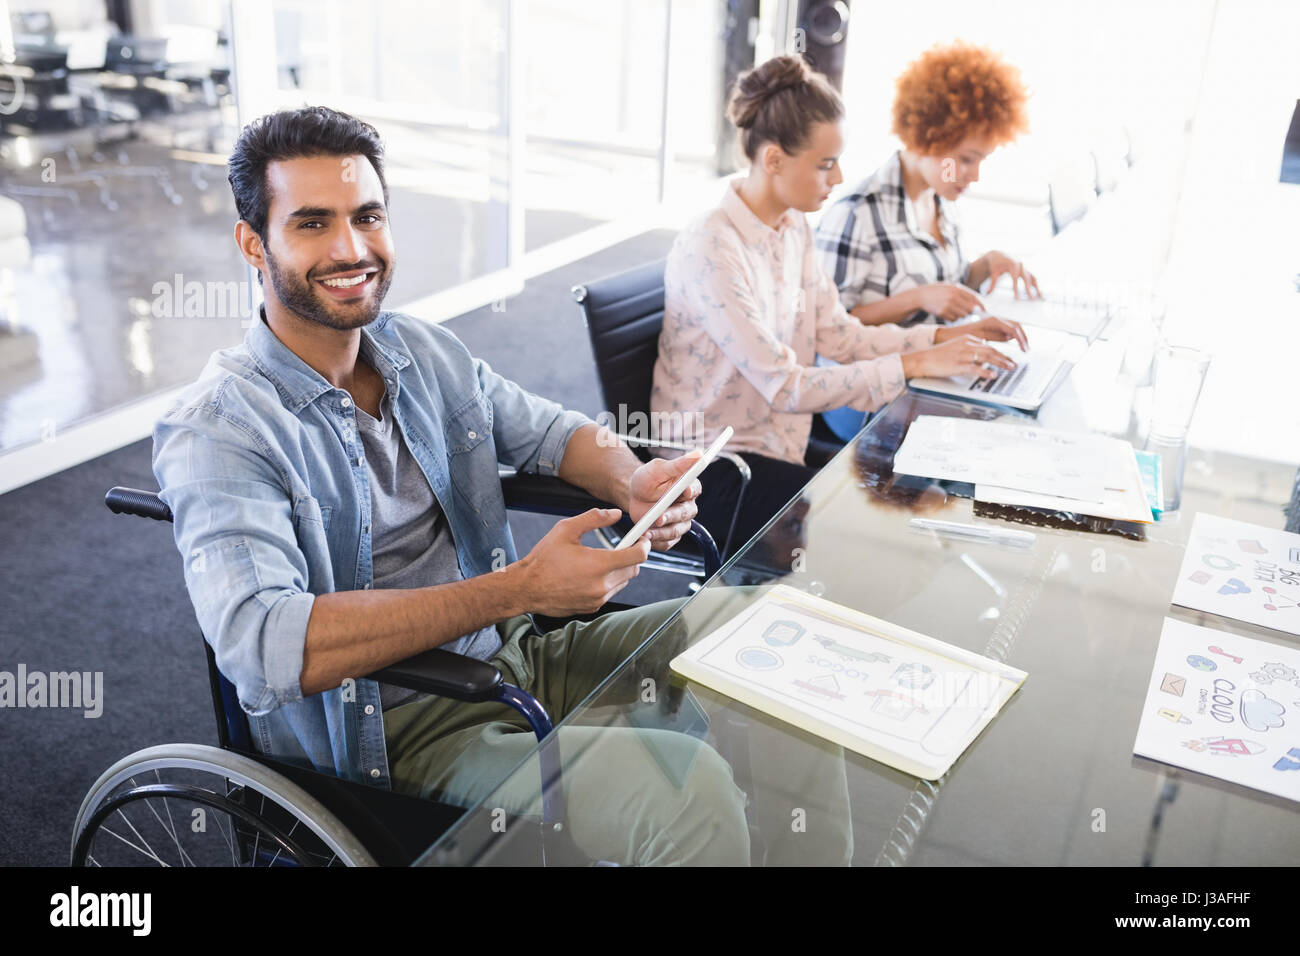 High angle portrait of smiling businessman using digital tablet while sitting on wheelchair at creative office - Stock Image